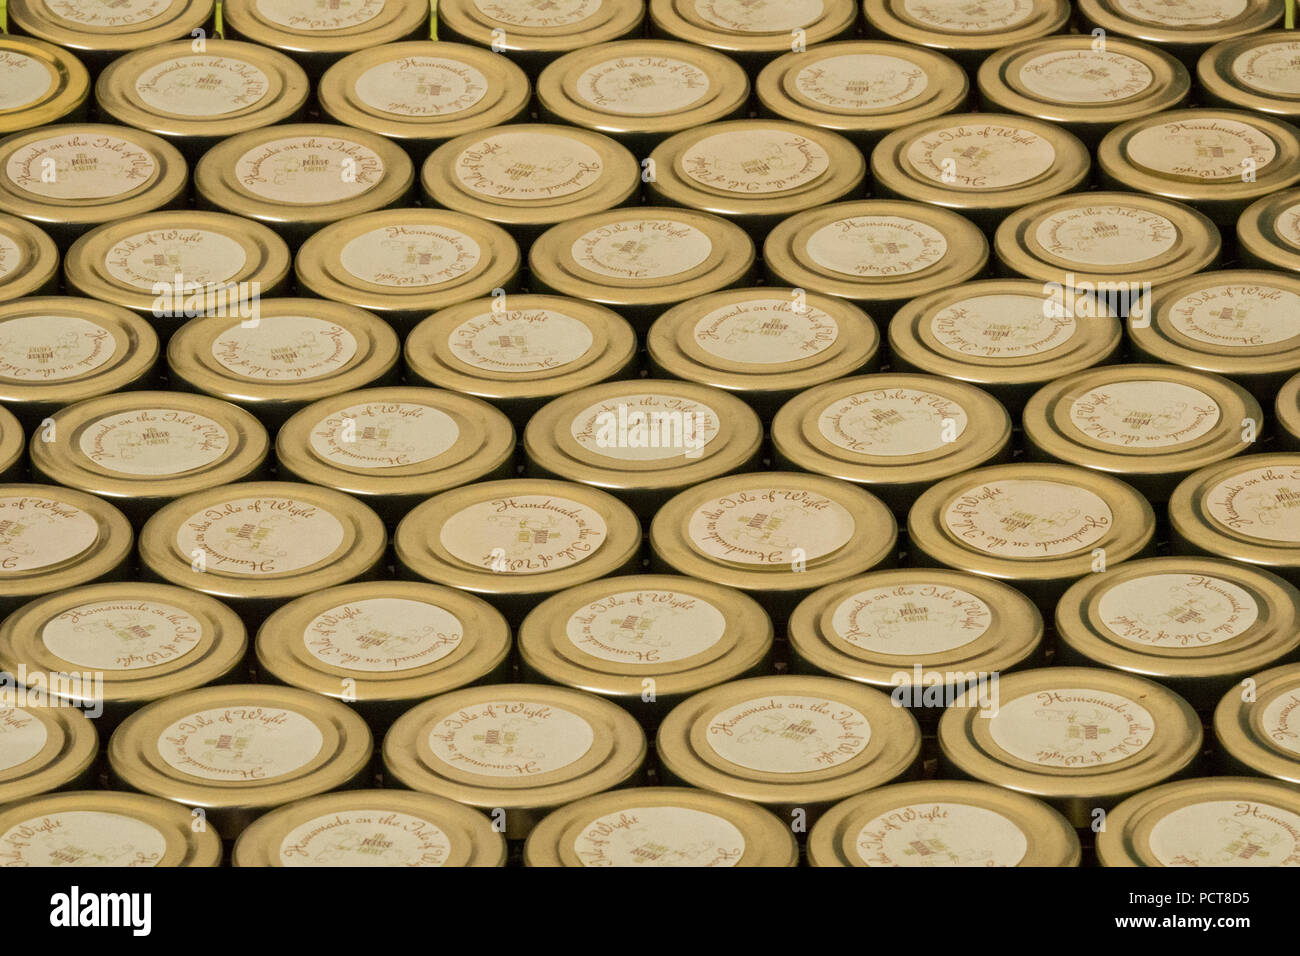 large number of jam jar lids made from metal forming a pattern. storage jars stacked on a shelf making lines and rows packaged ready for distribution - Stock Image